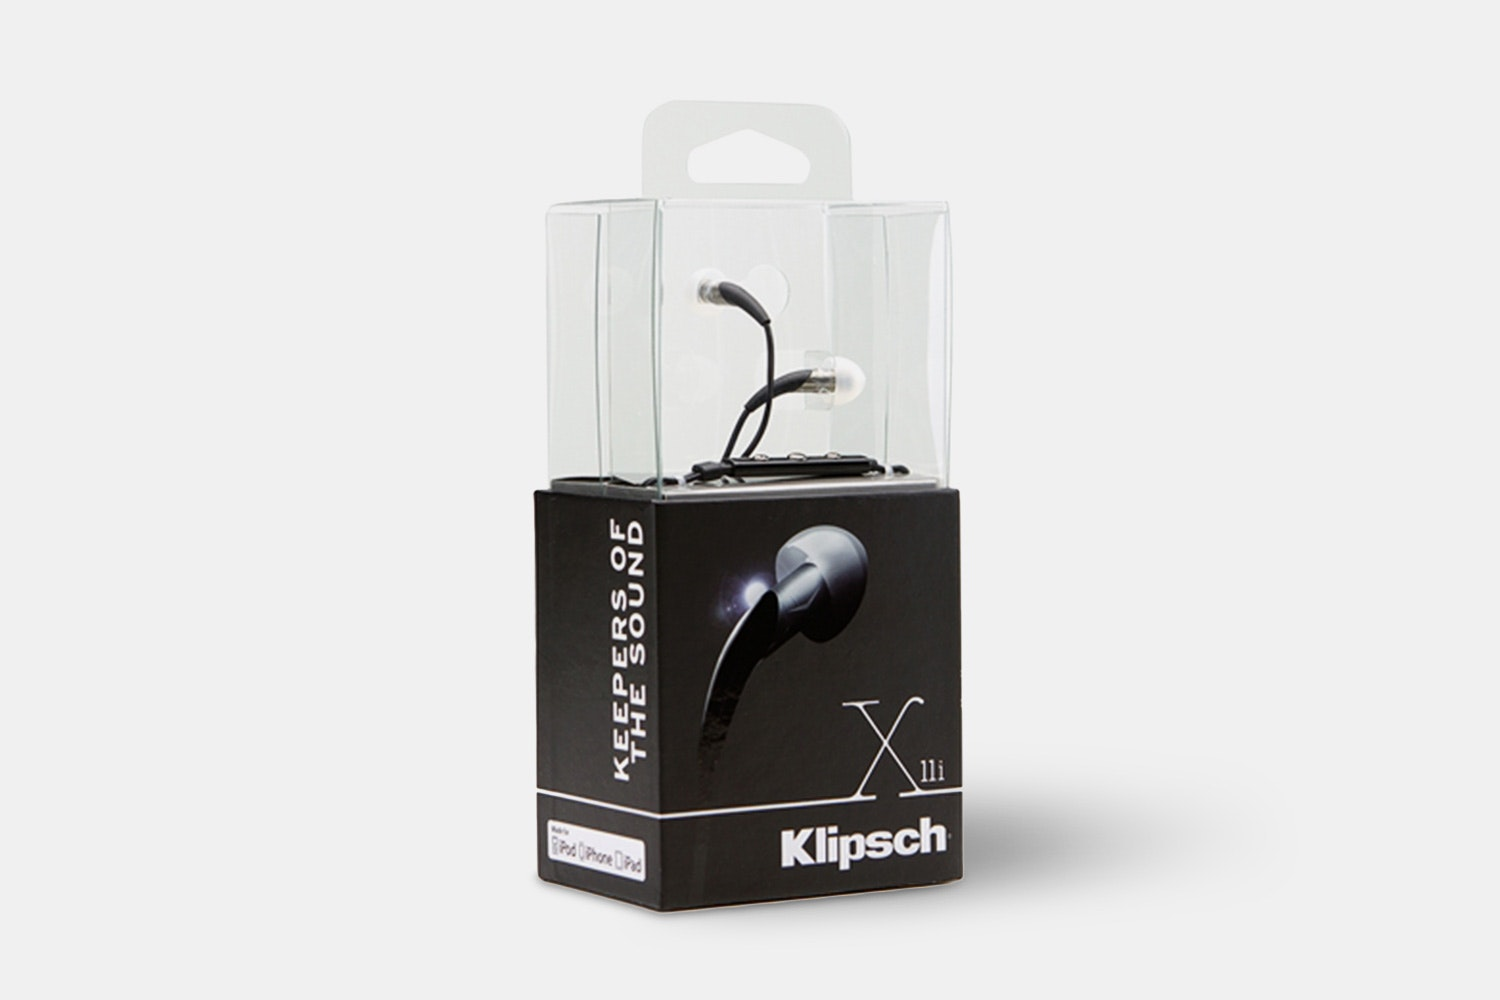 Klipsch X11i In-Ear Headphones